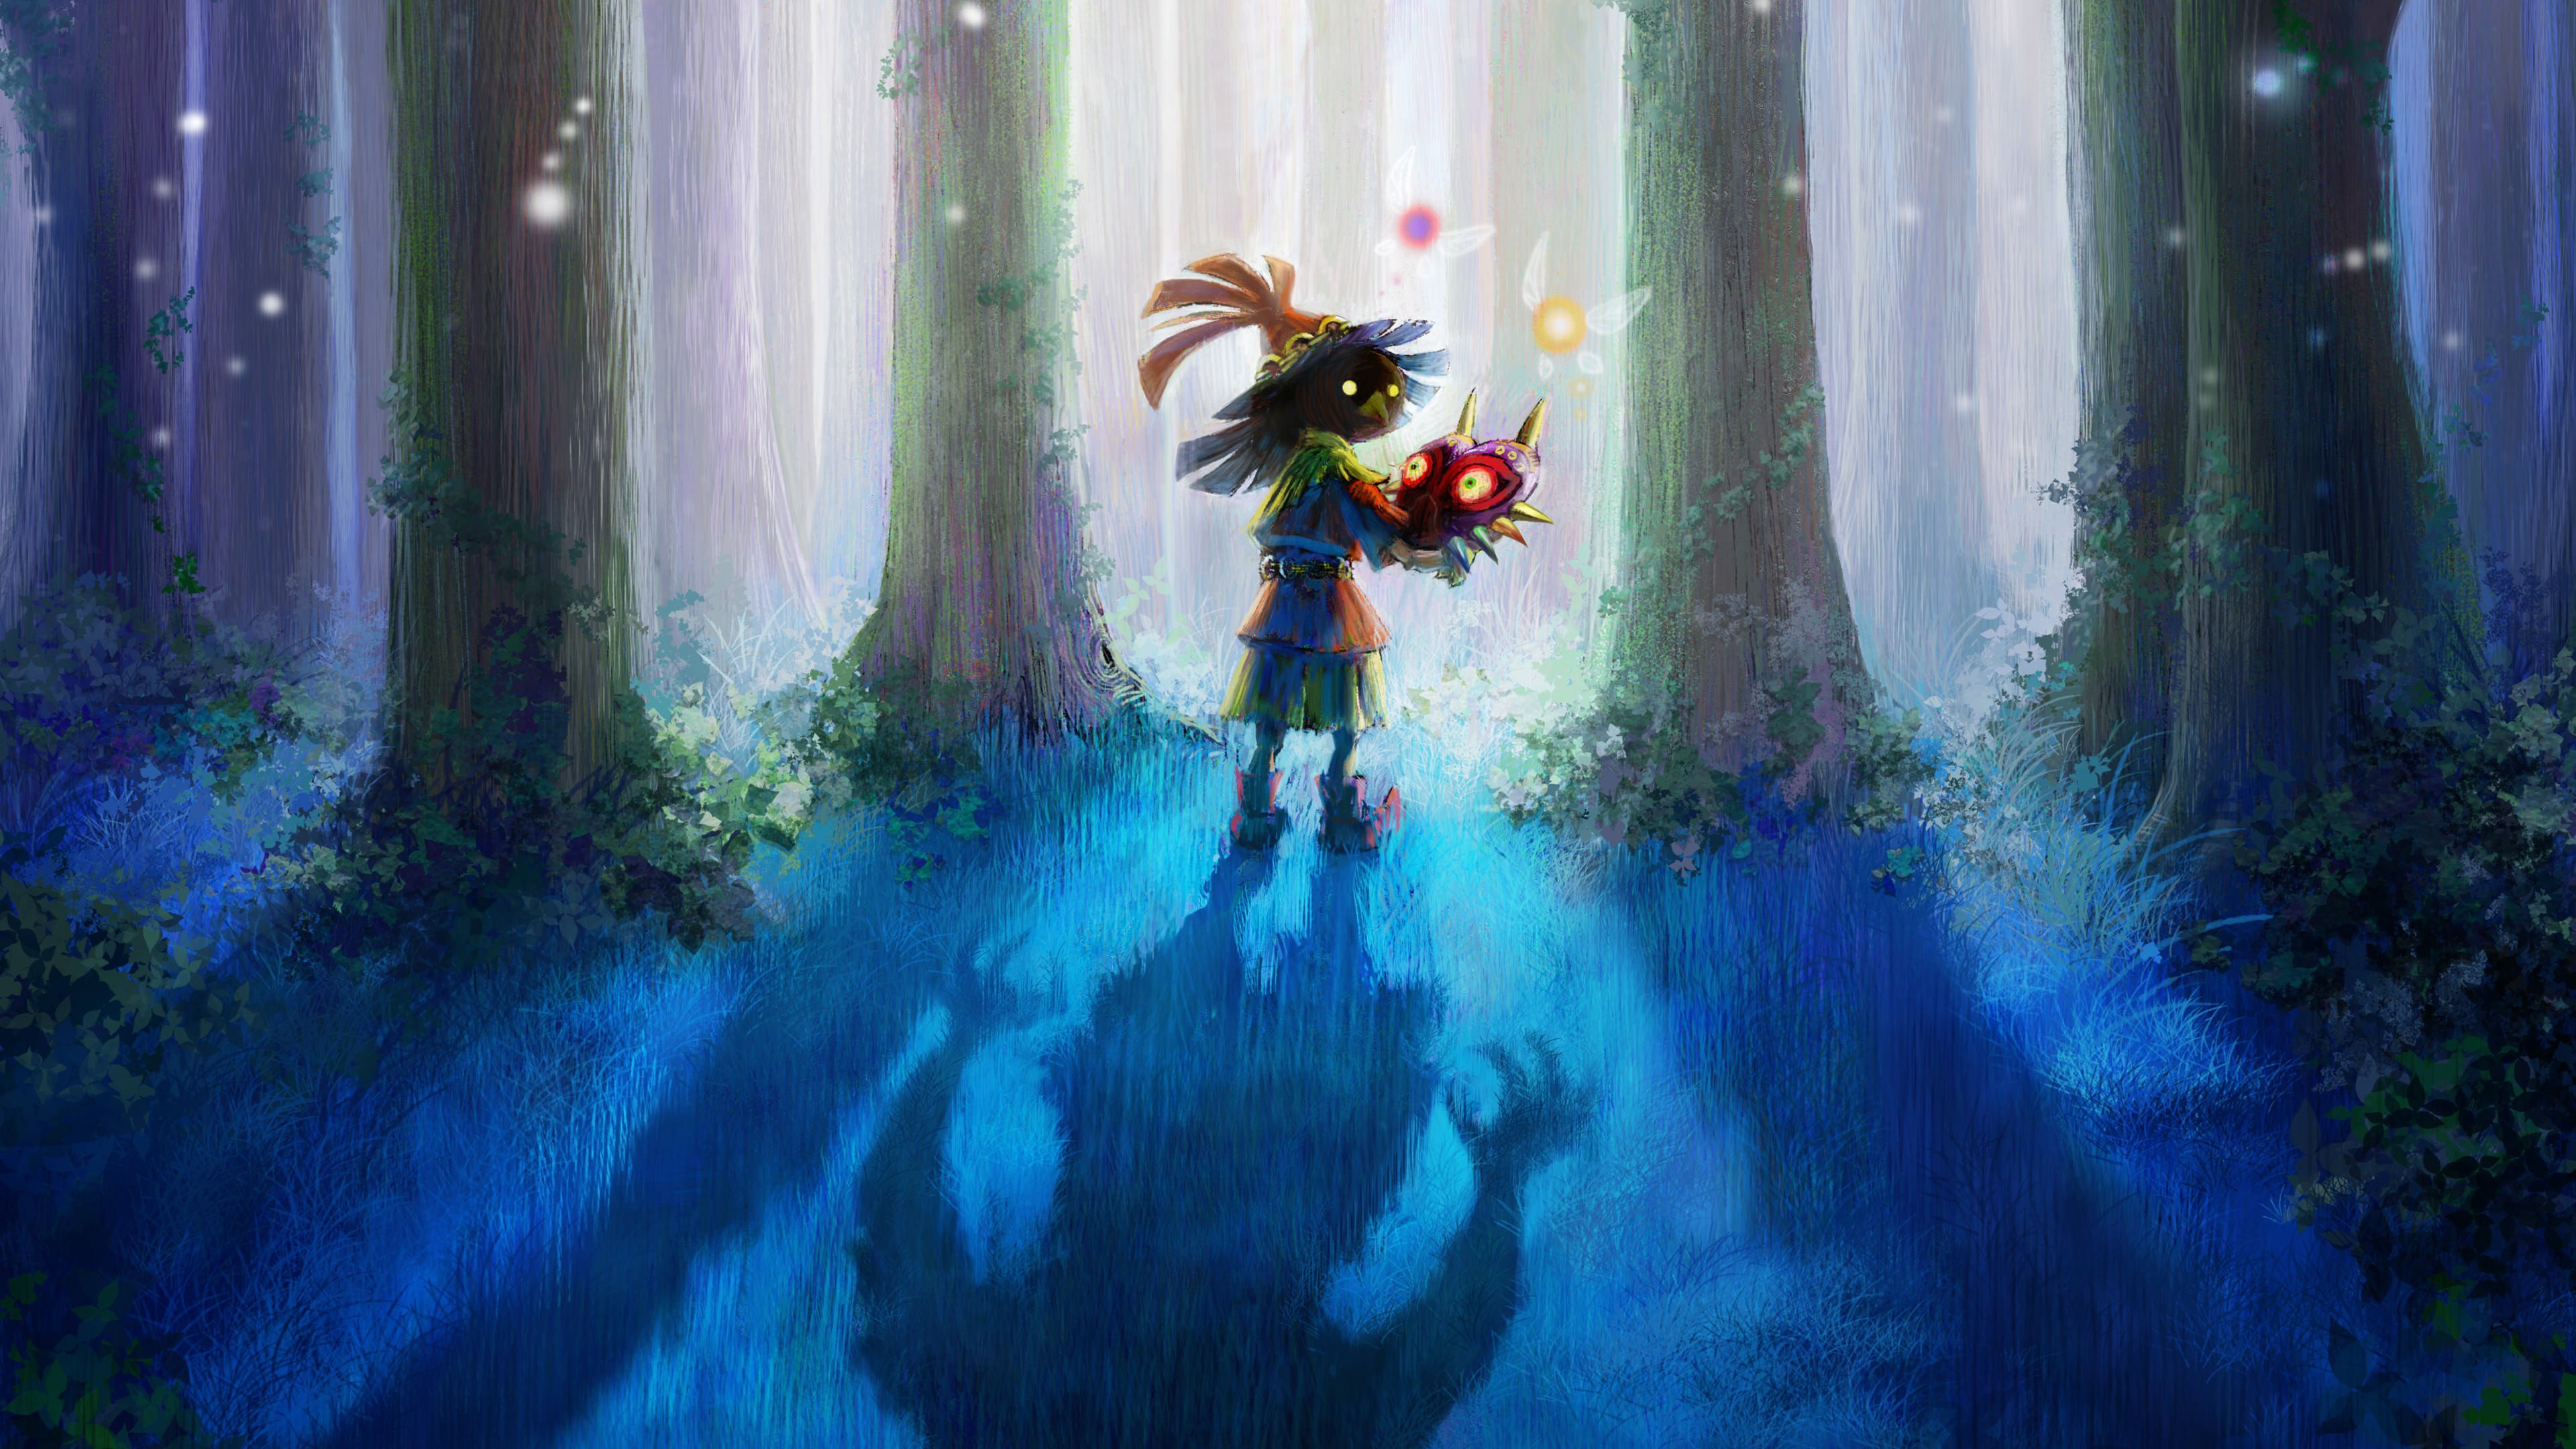 Skull Kid Wallpaper: Skull Wallpapers, Photos And Desktop Backgrounds Up To 8K